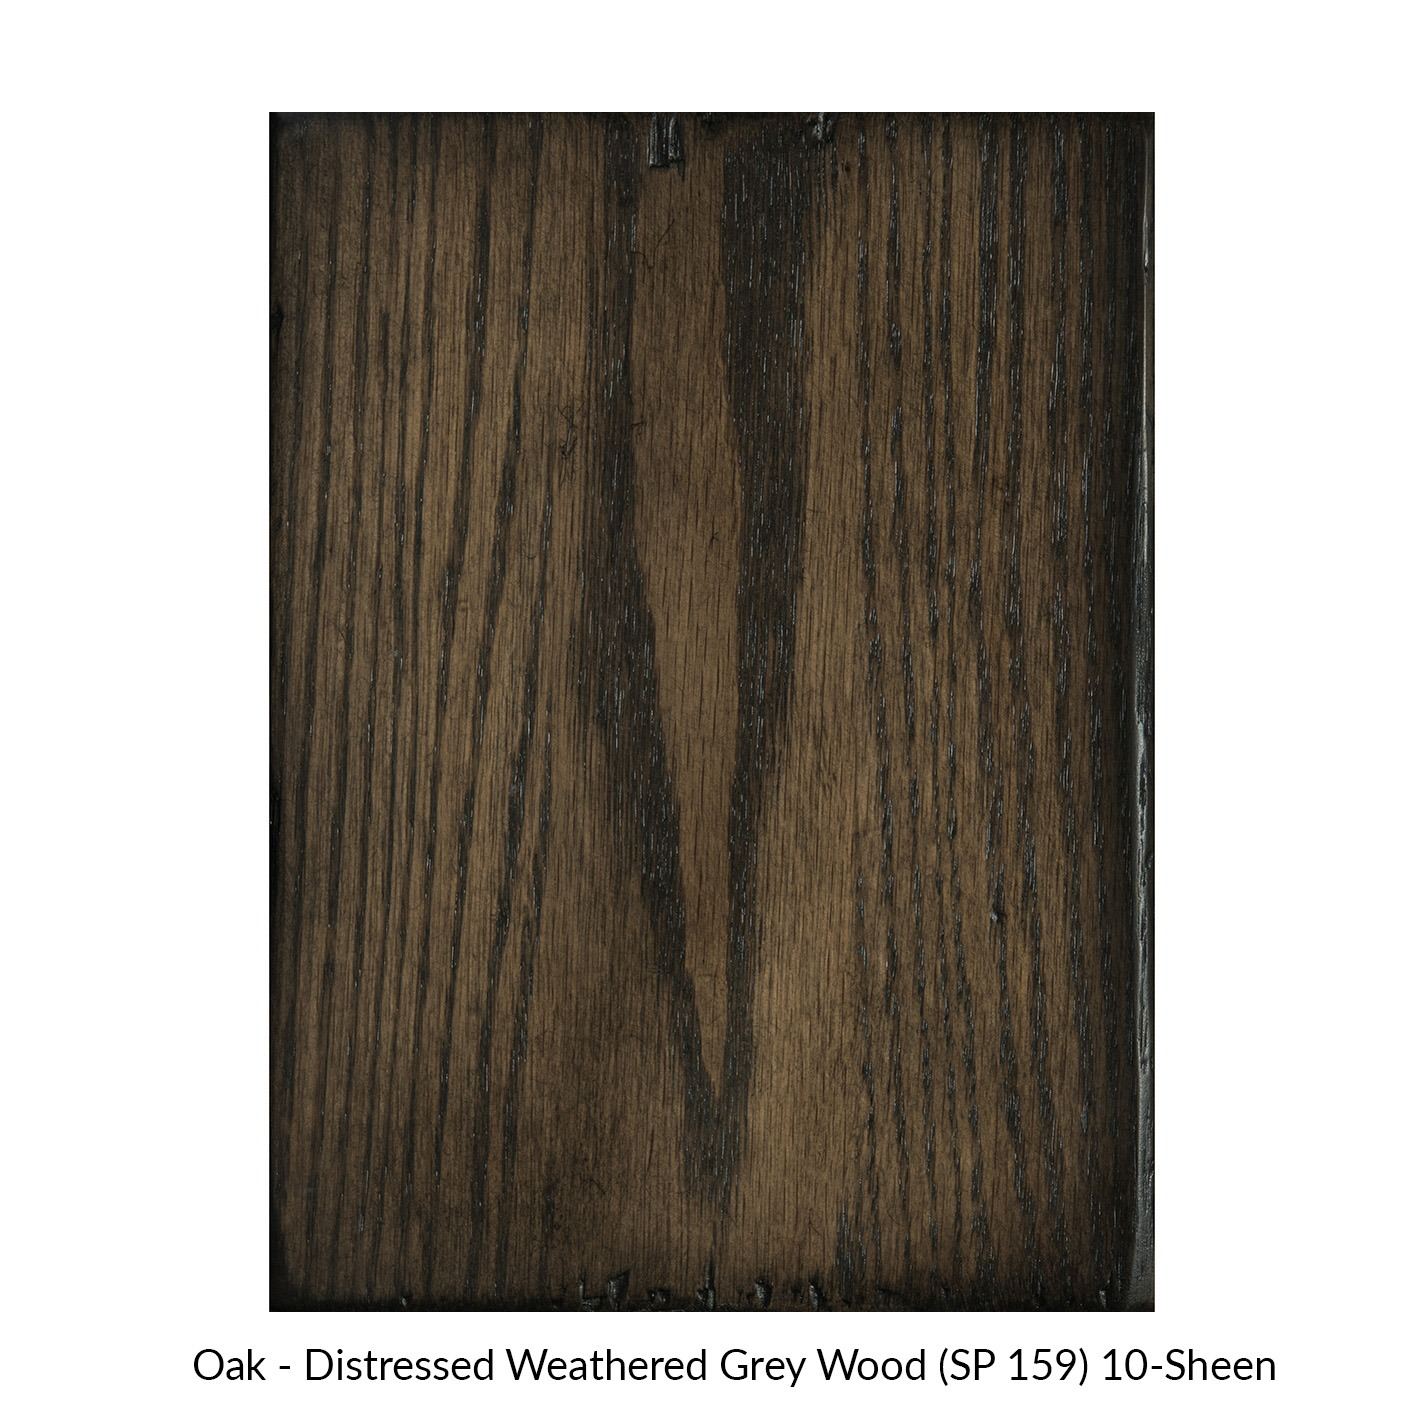 spectrum-oak-distressed-weathered-grey-wood-sp-159.jpg